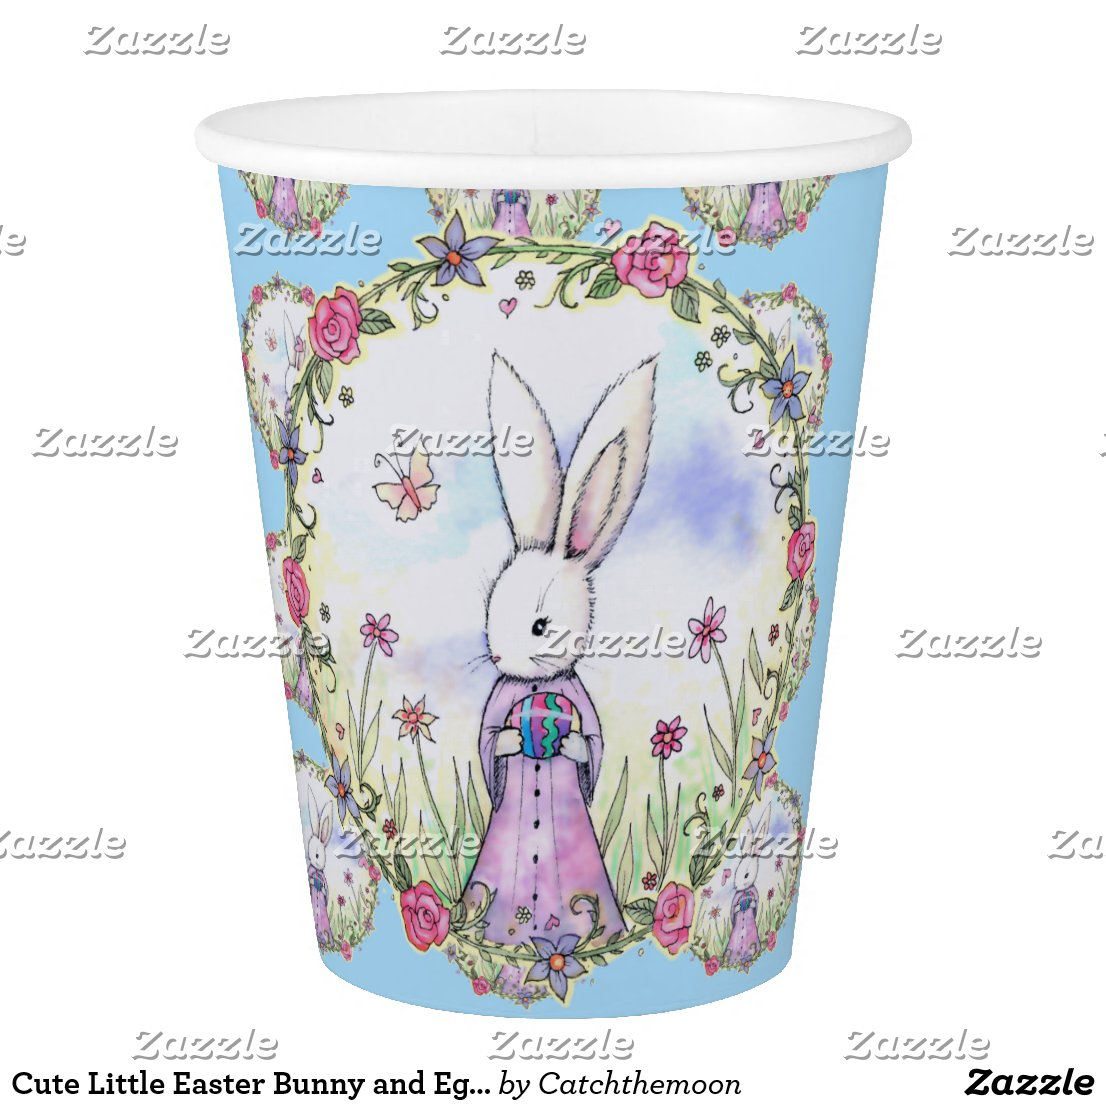 Cute Little Easter Bunny and Eggs Paper Cup